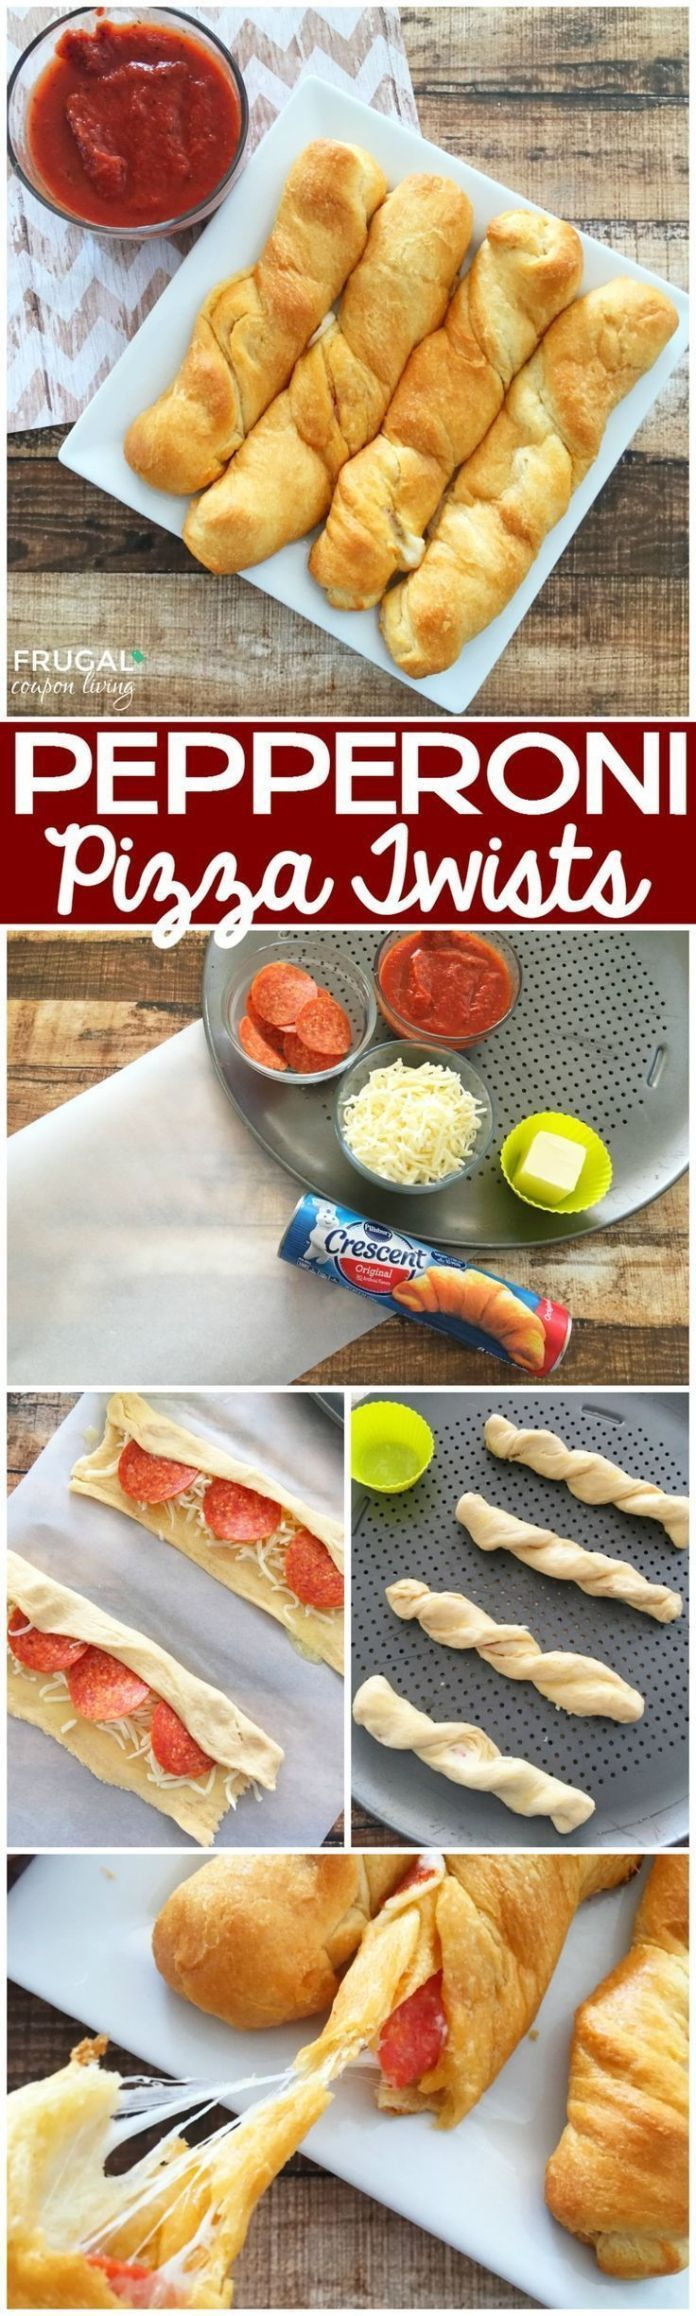 Best Diy Crafts Ideas For Your Home : Homemade Pepperoni Pizza Twists made with Crescent Rolls on Frugal Coupon LIving